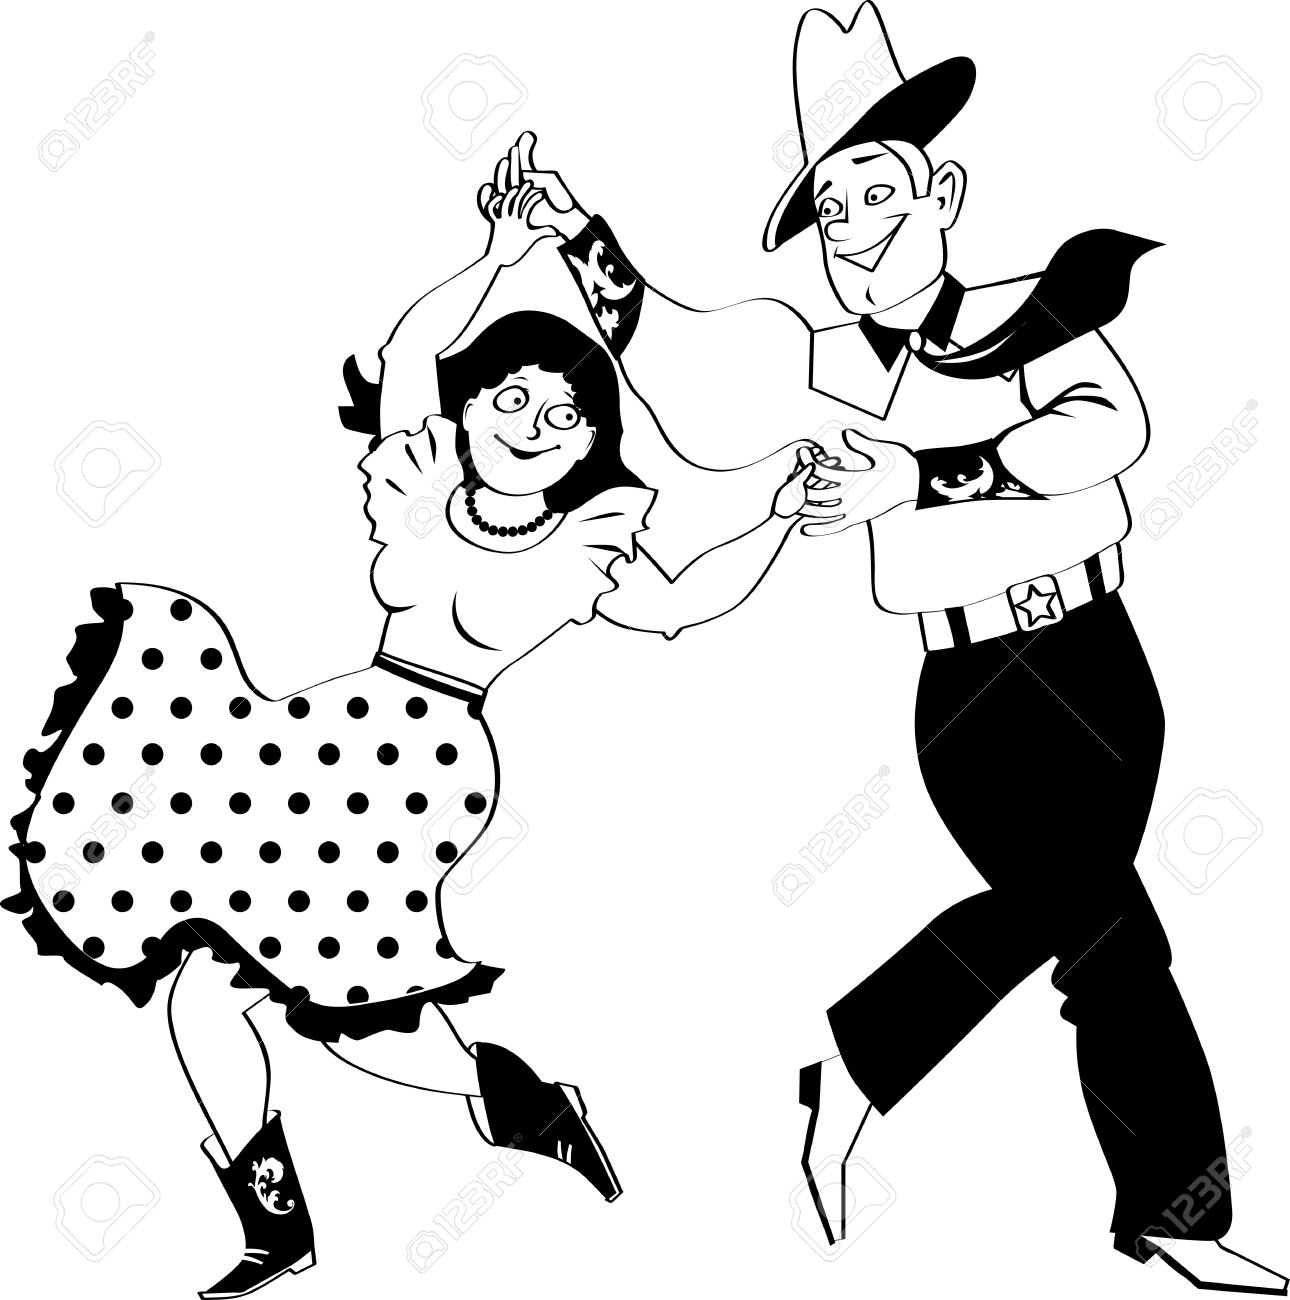 1290x1300 Couple Clipart Square Dancing